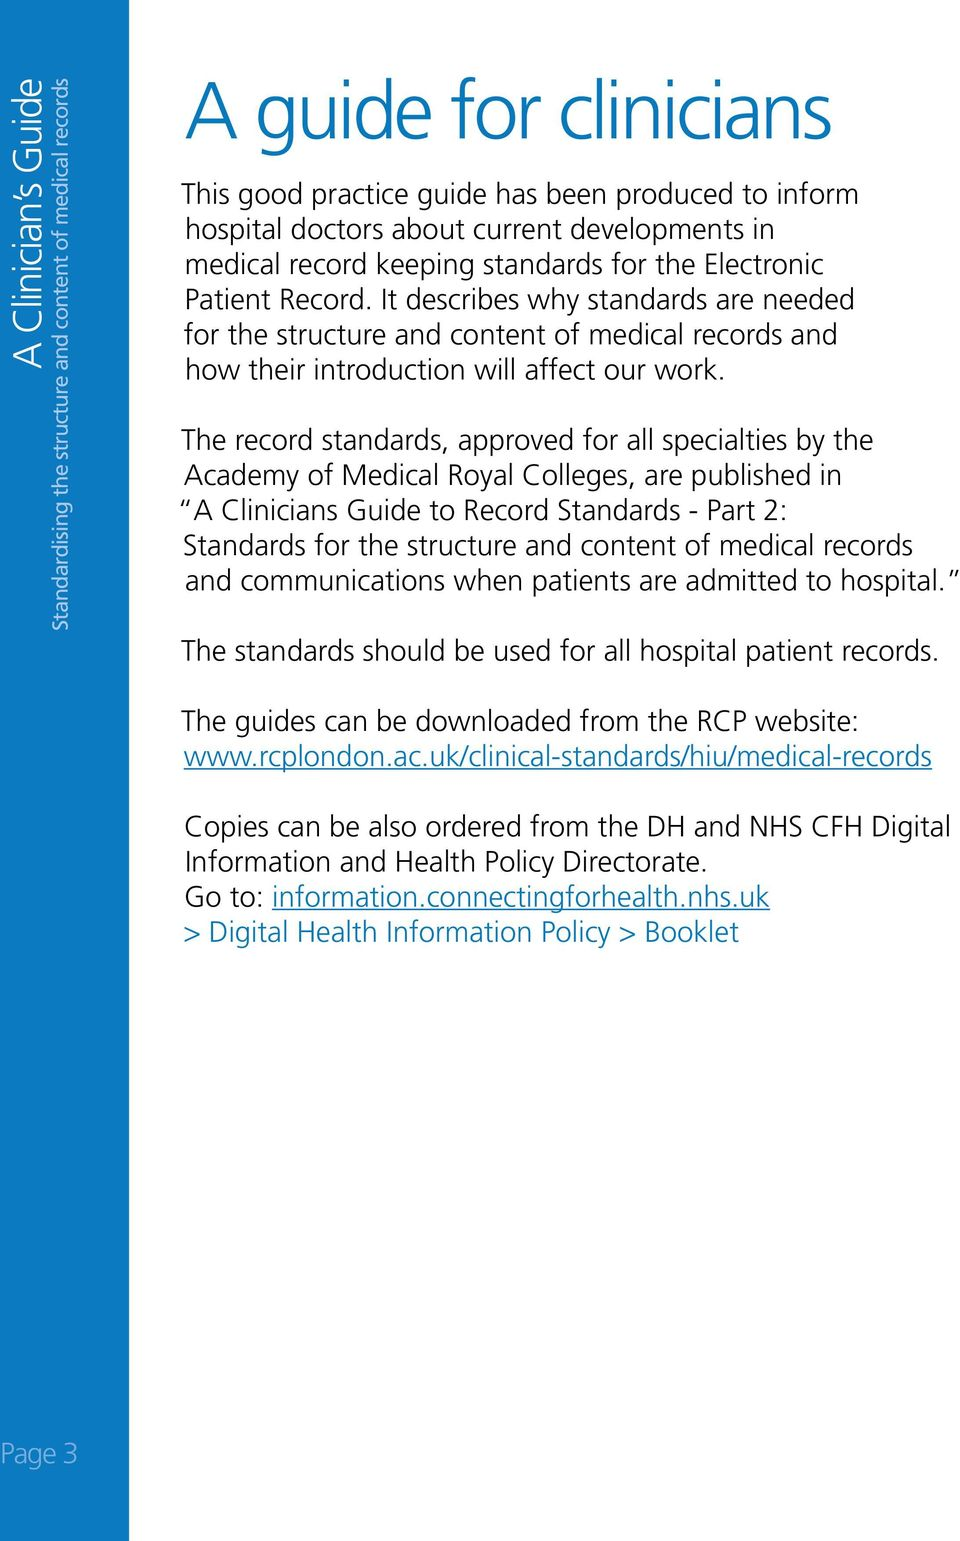 The record standards, approved for all specialties by the Academy of Medical Royal Colleges, are published in A Clinicians Guide to Record Standards - Part 2: Standards for the structure and content